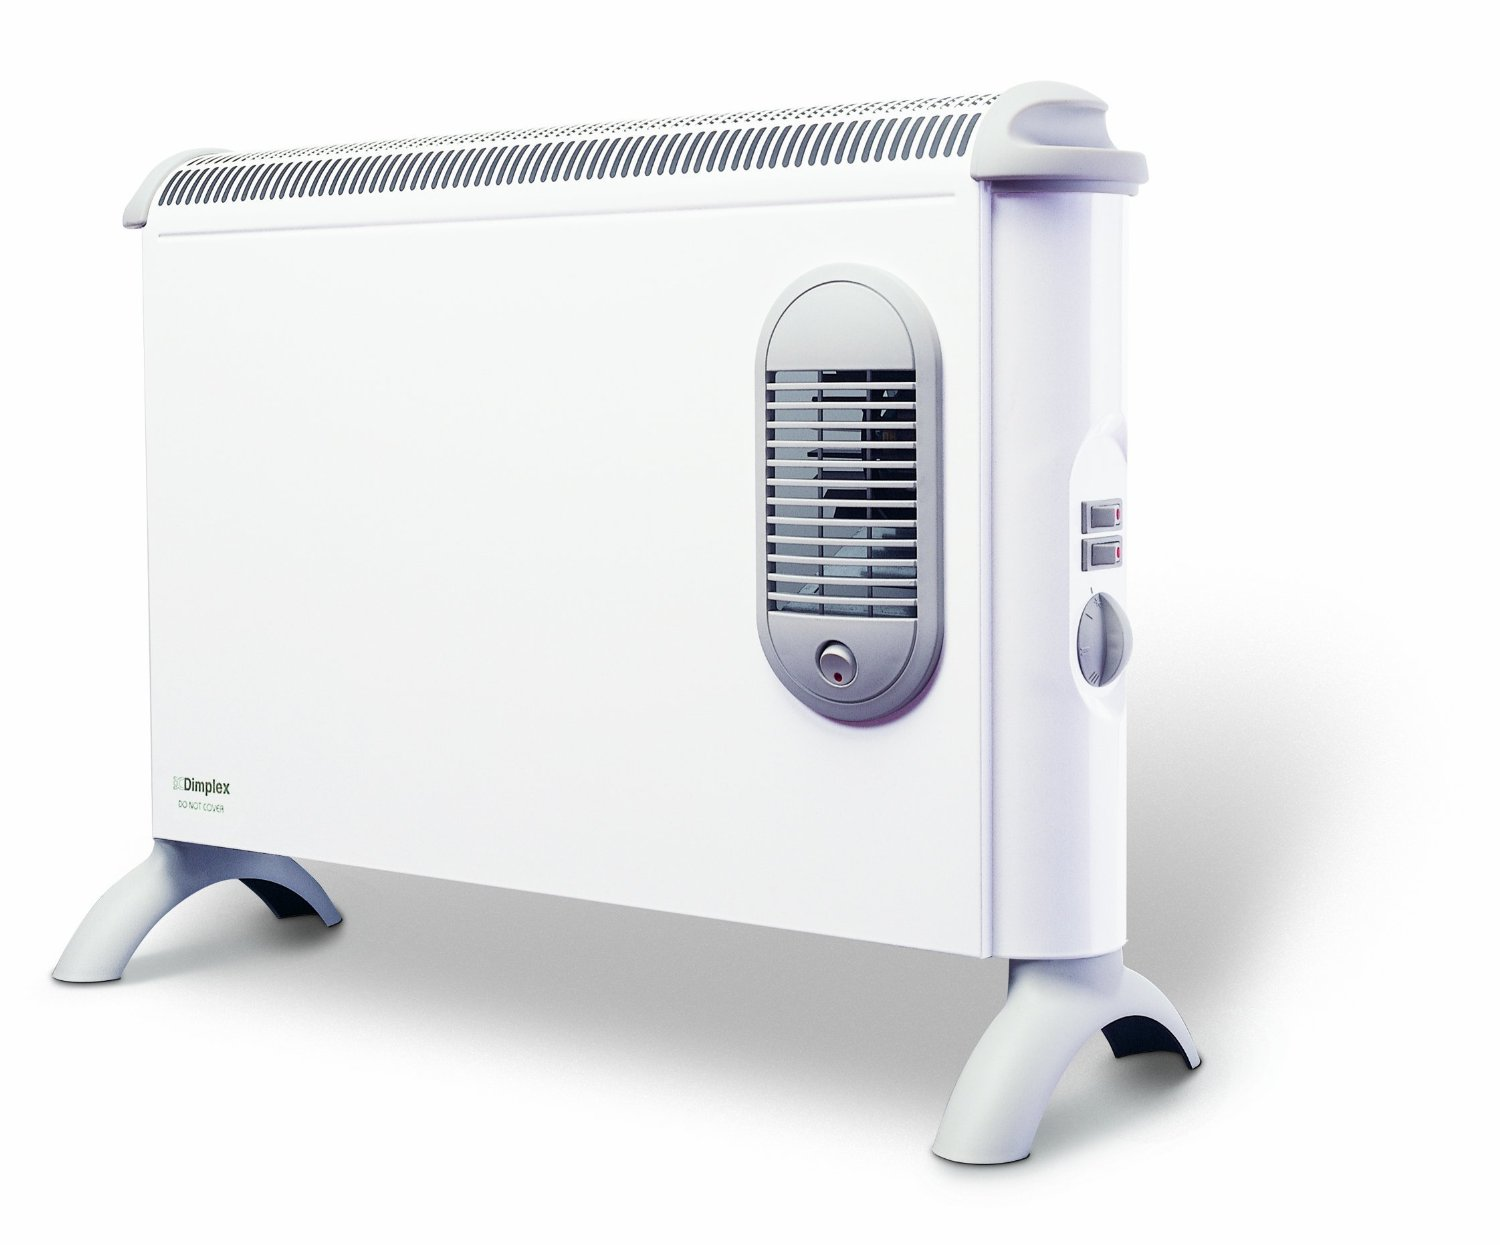 Electric Convector Heater Buying Guide